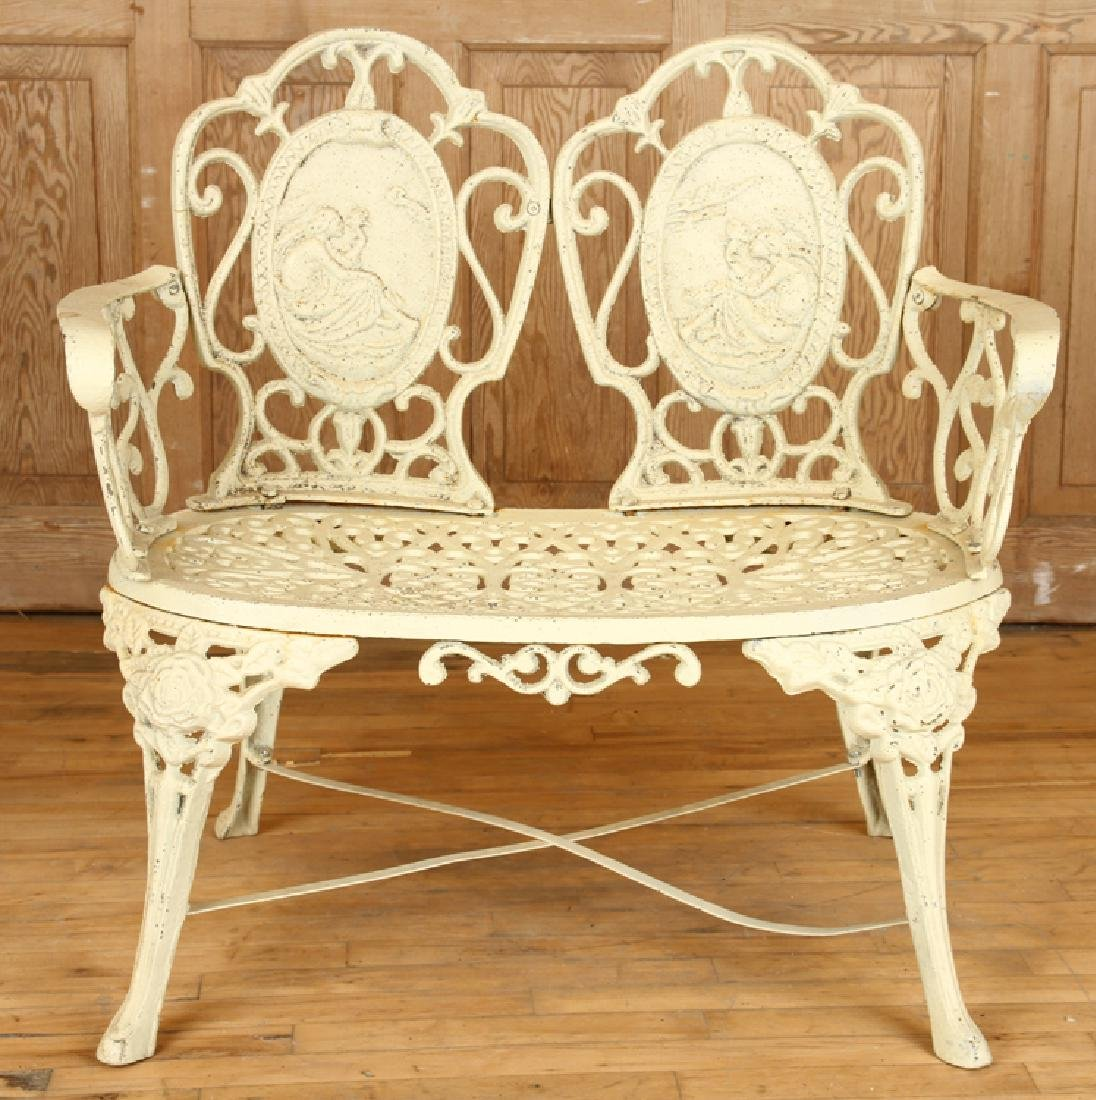 CAST IRON GARDEN BENCH DOUBLE CAMEO BACK